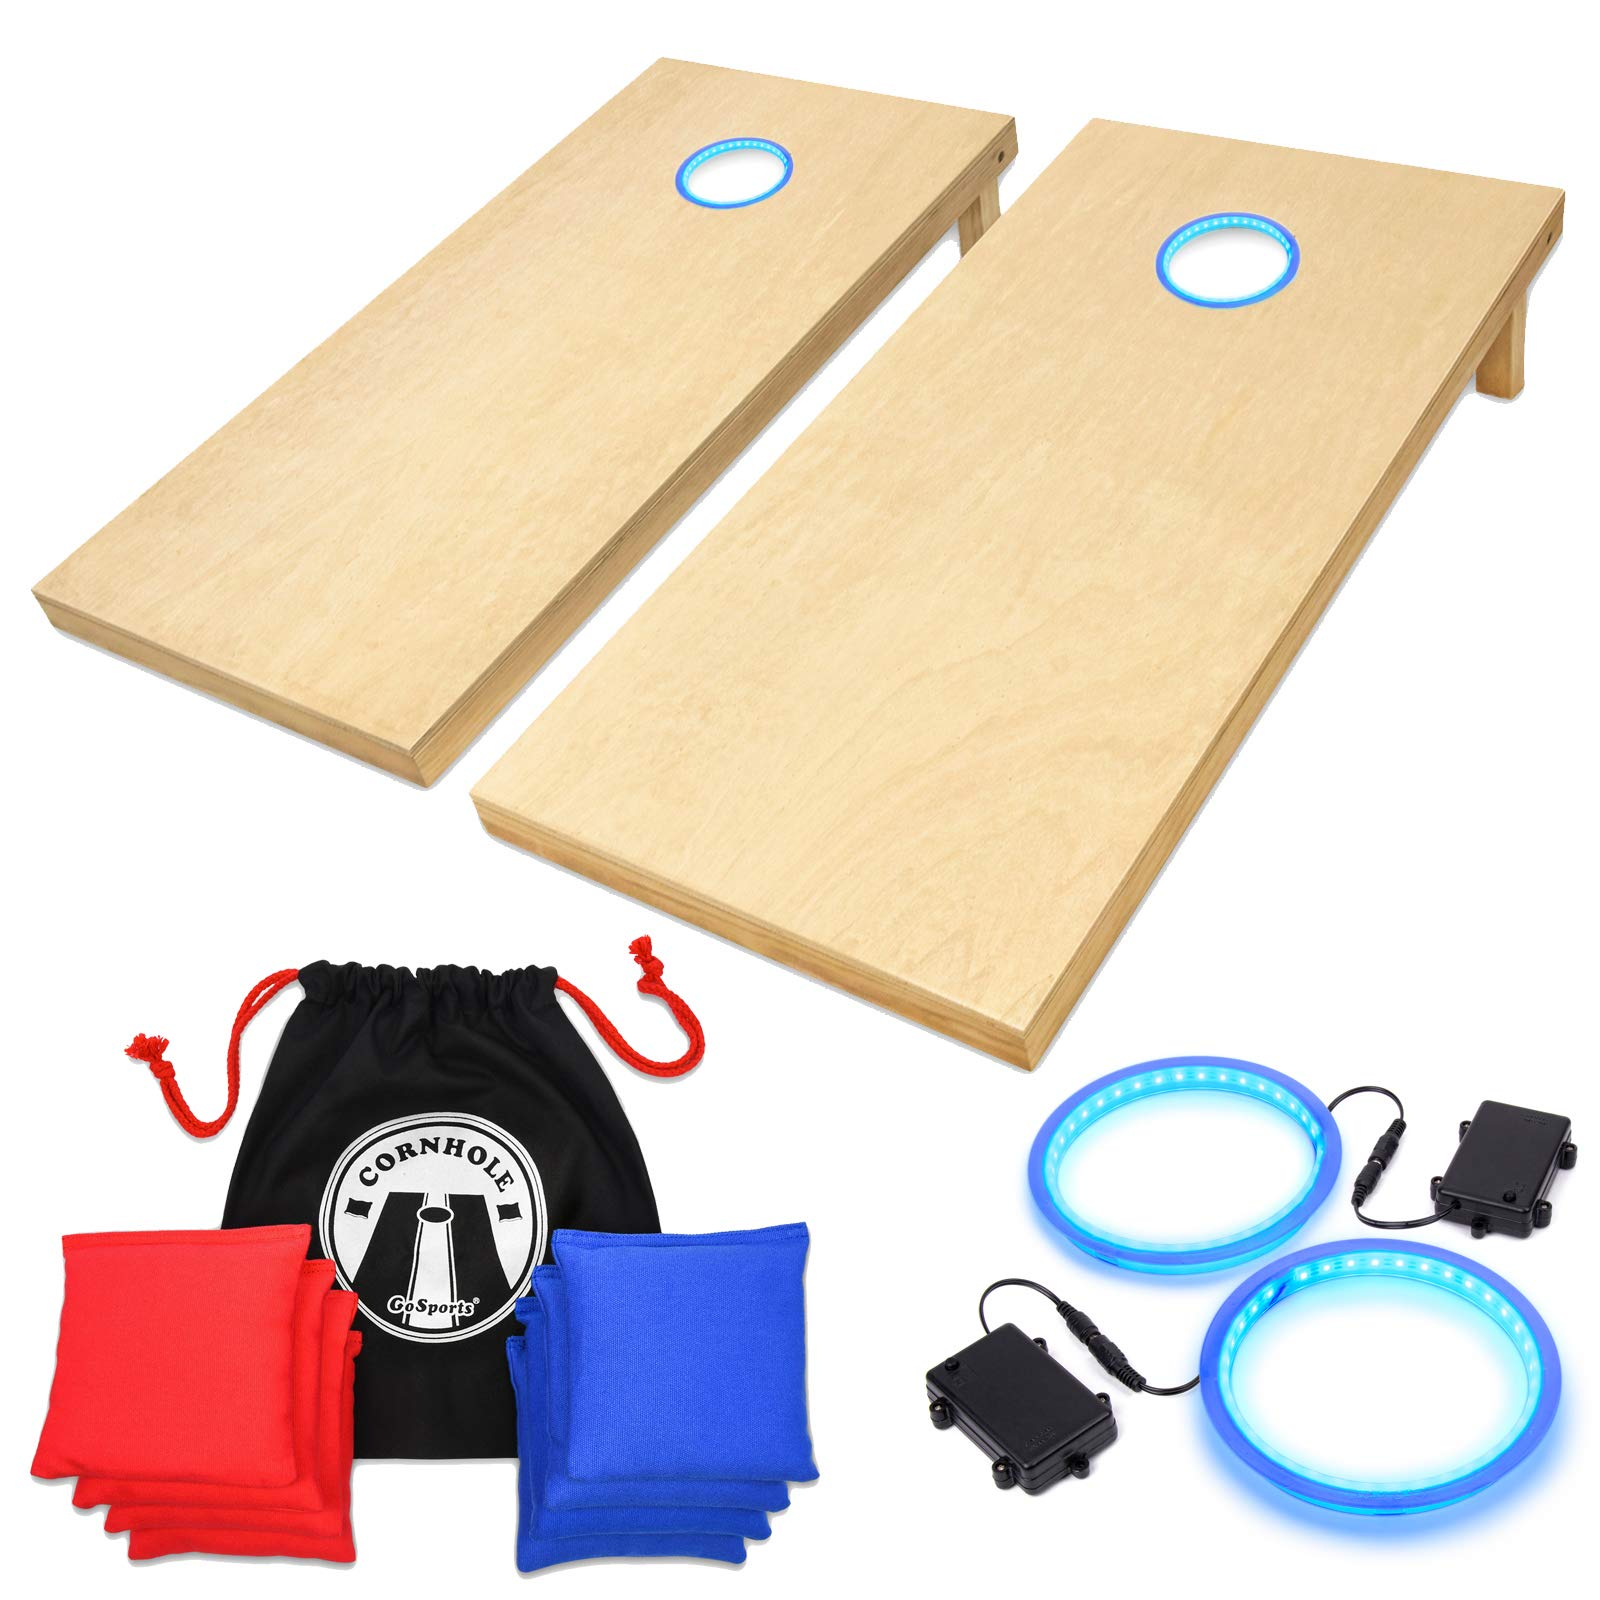 GoSports 4' x 2' Wooden Cornhole Set with Blue LED Rings